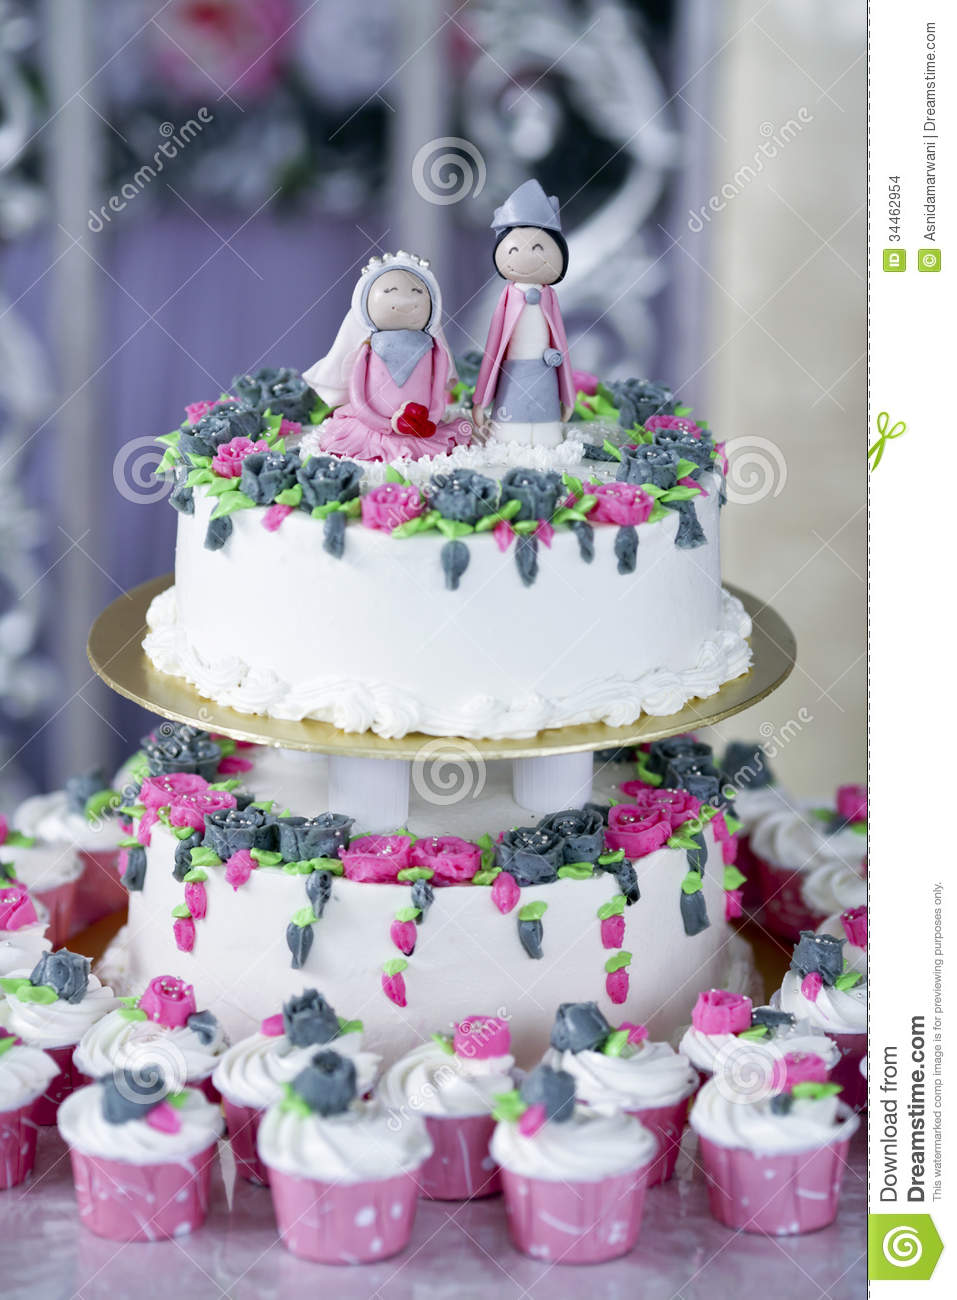 Wallpaper Download Cute Couple Wedding Cake Stock Photo Image Of Cake Bakery Love